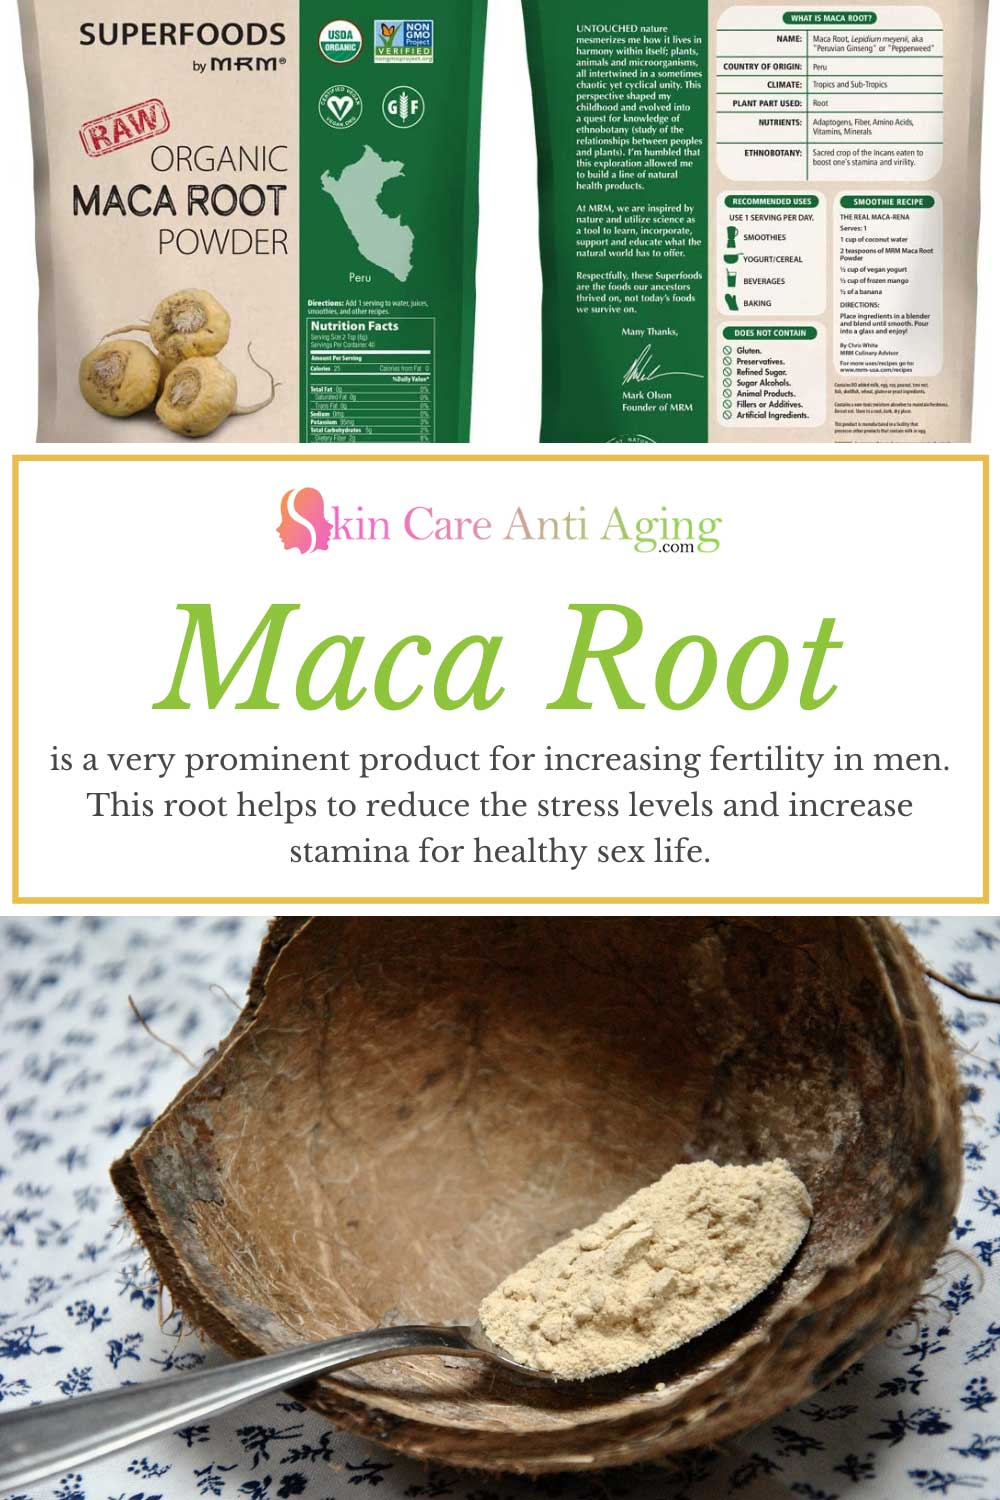 Maca root for increasing fertility in men